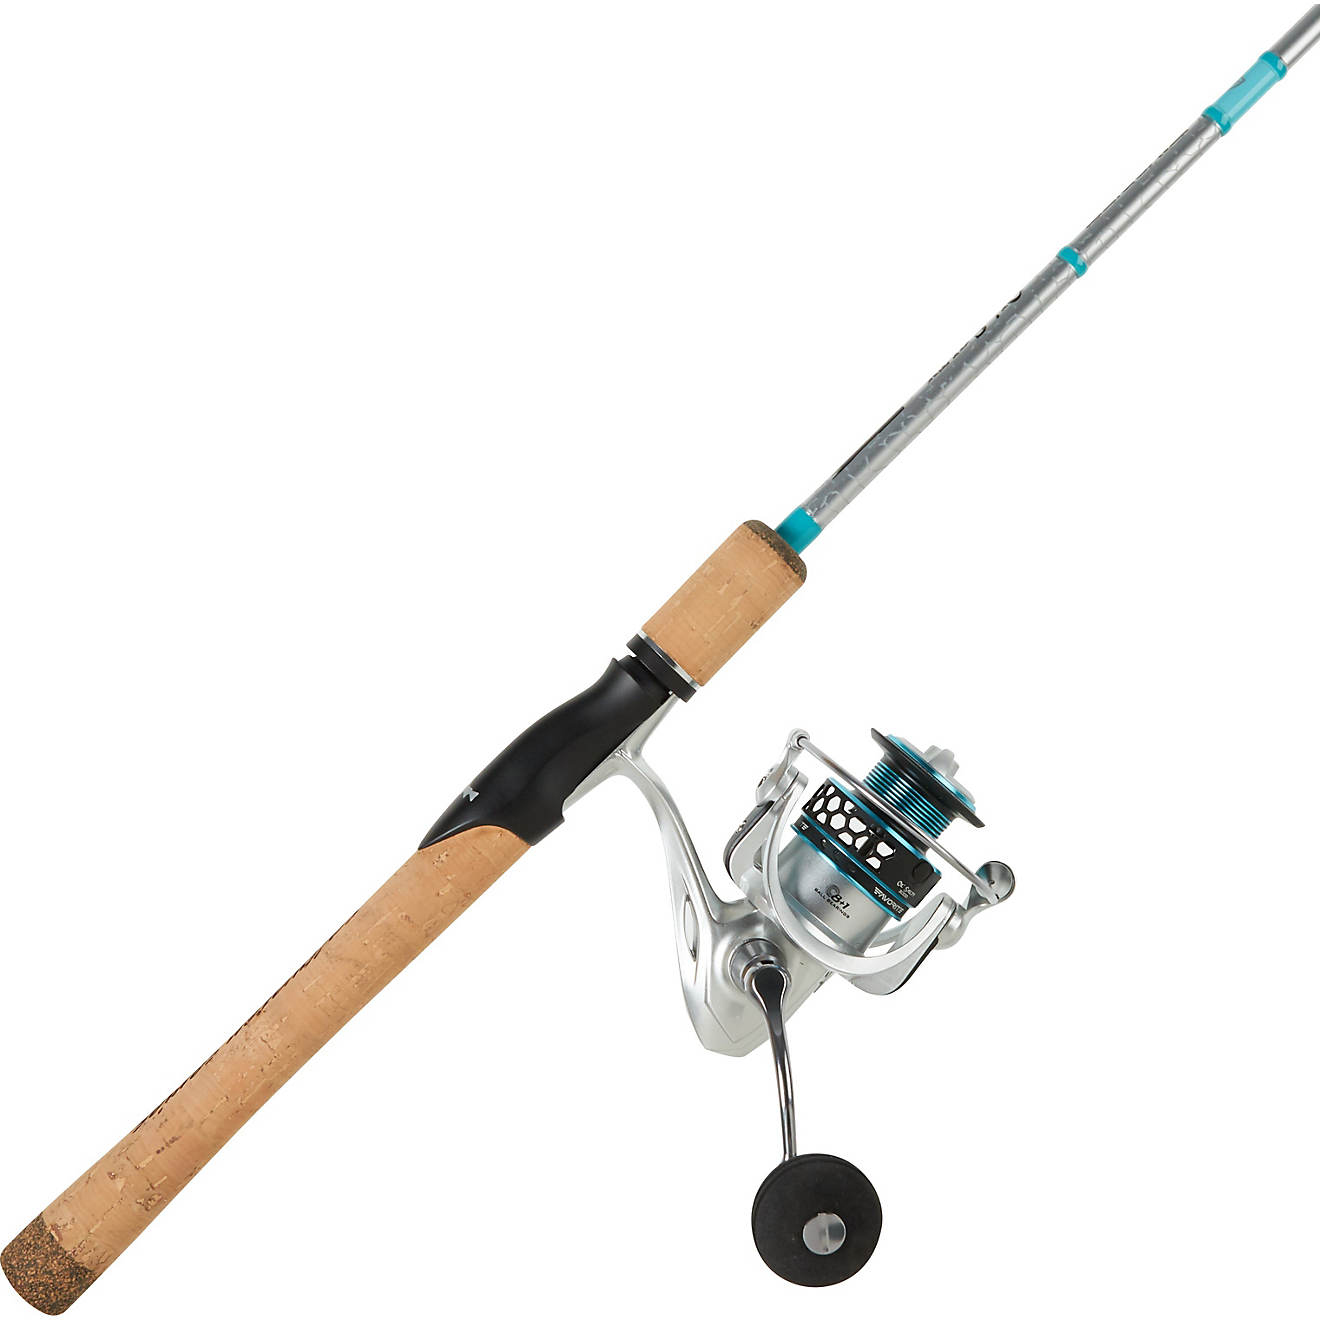 Favorite Fishing Ol Salty Spinning Rod and Reel Combo